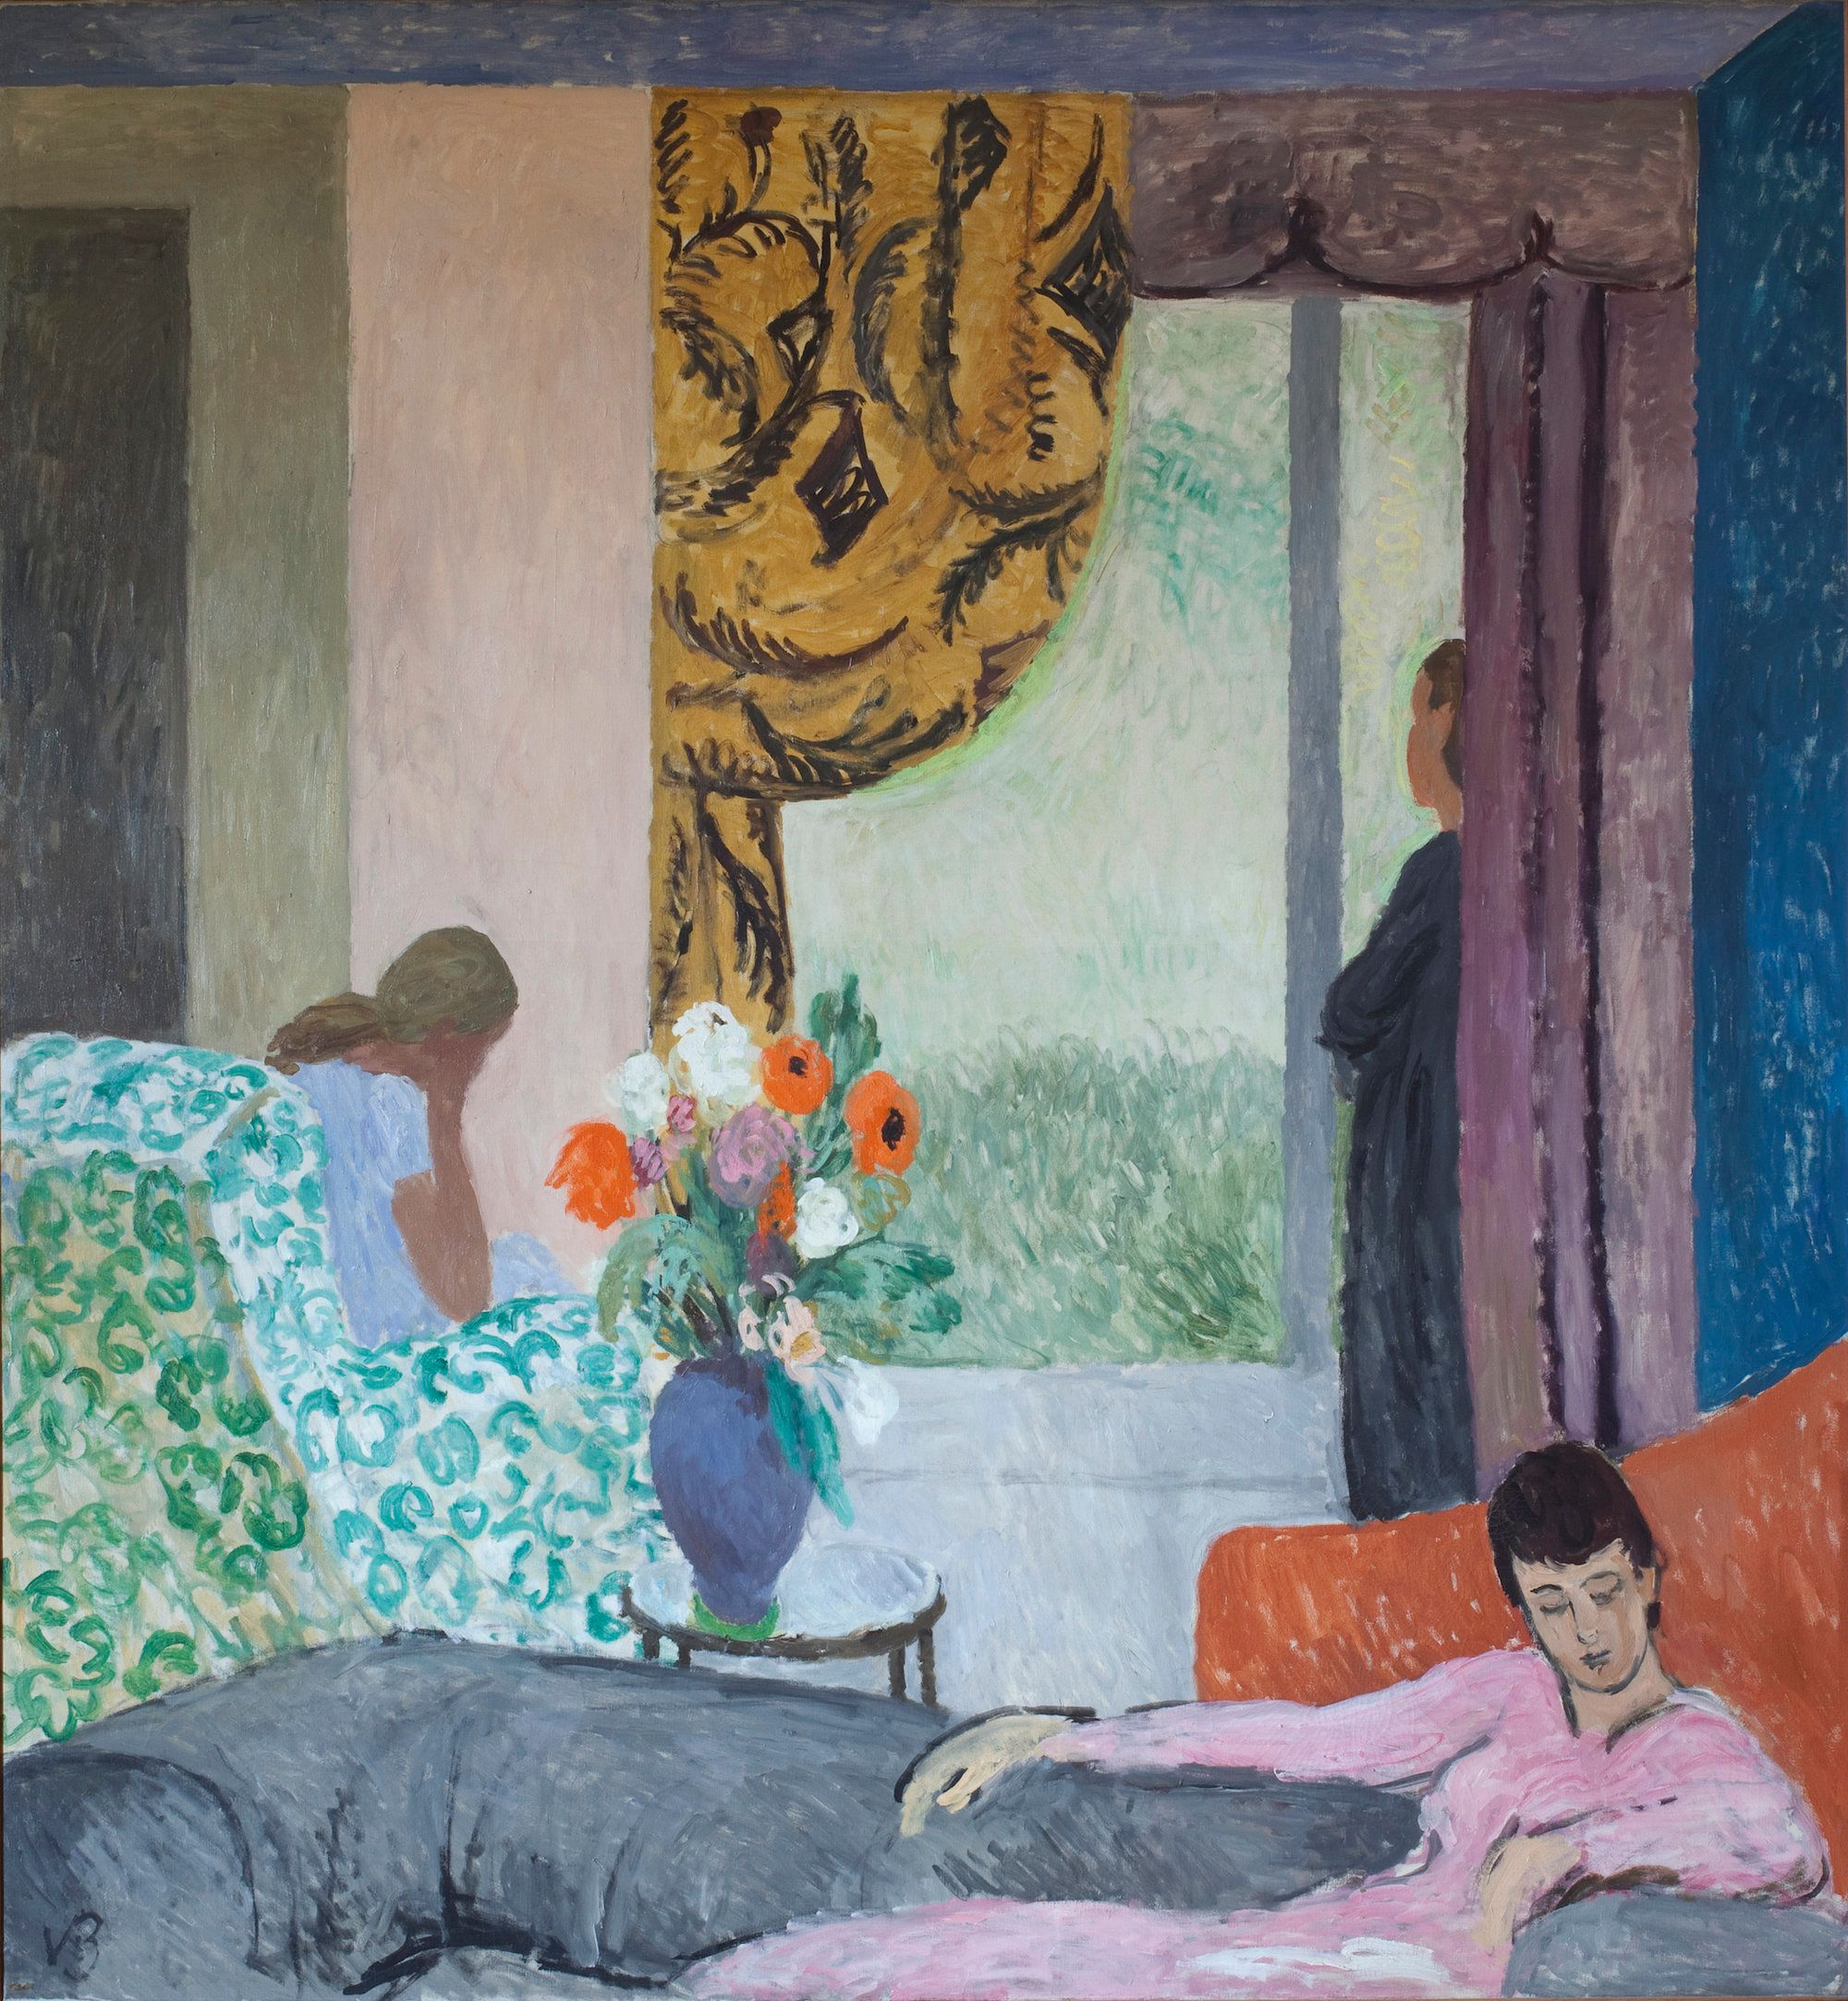 Vanessa Bell, The Other Room, late 1930s, 161 x 174 cm, Private Collection, © The Estate of Vanessa Bell, courtesy of Henrietta Garnett